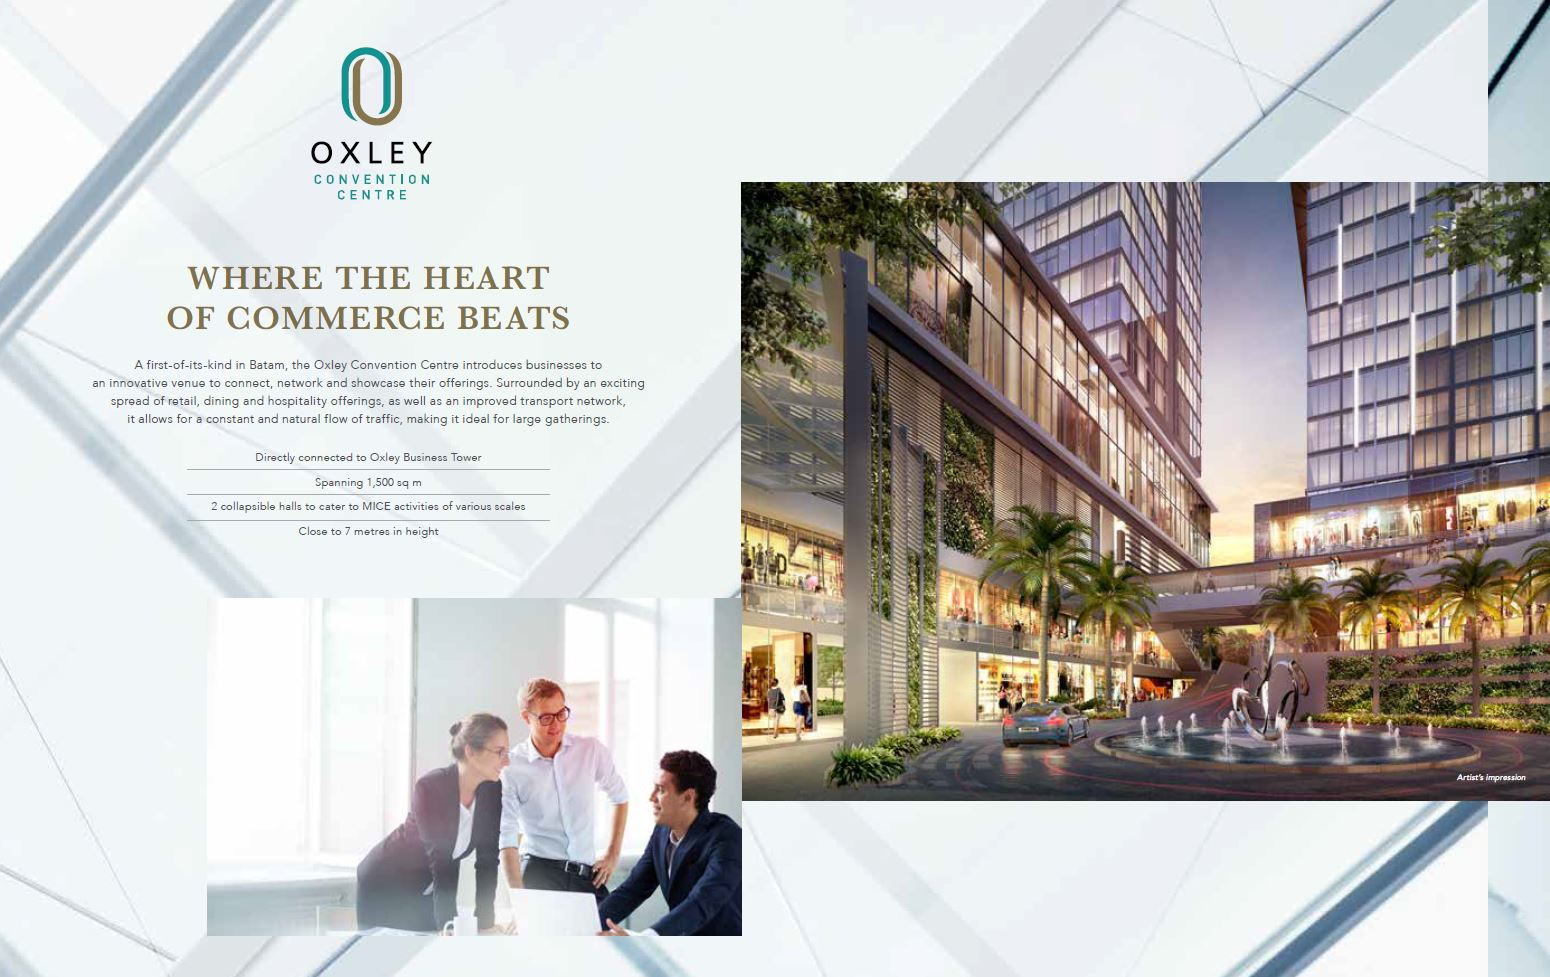 Oxley Convention Centre